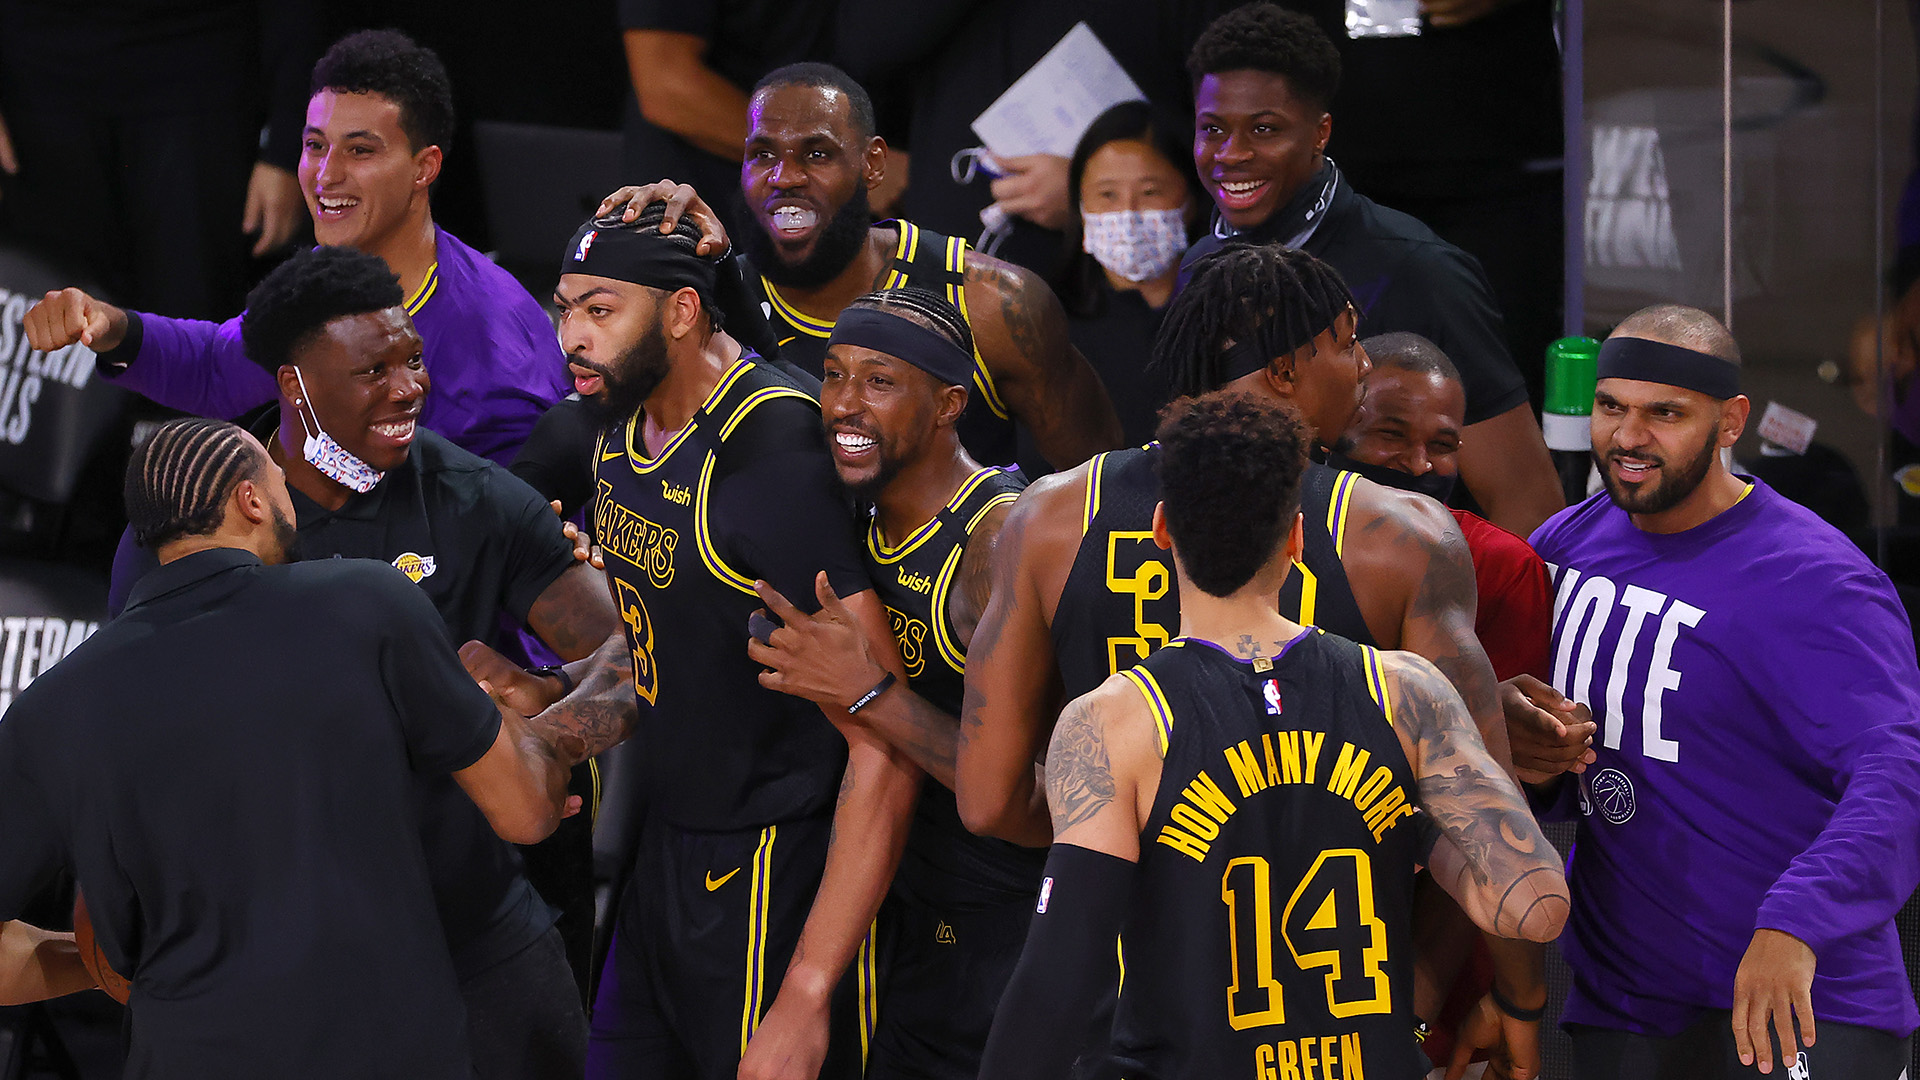 Los Angeles Lakers Spectrum Sportsnet